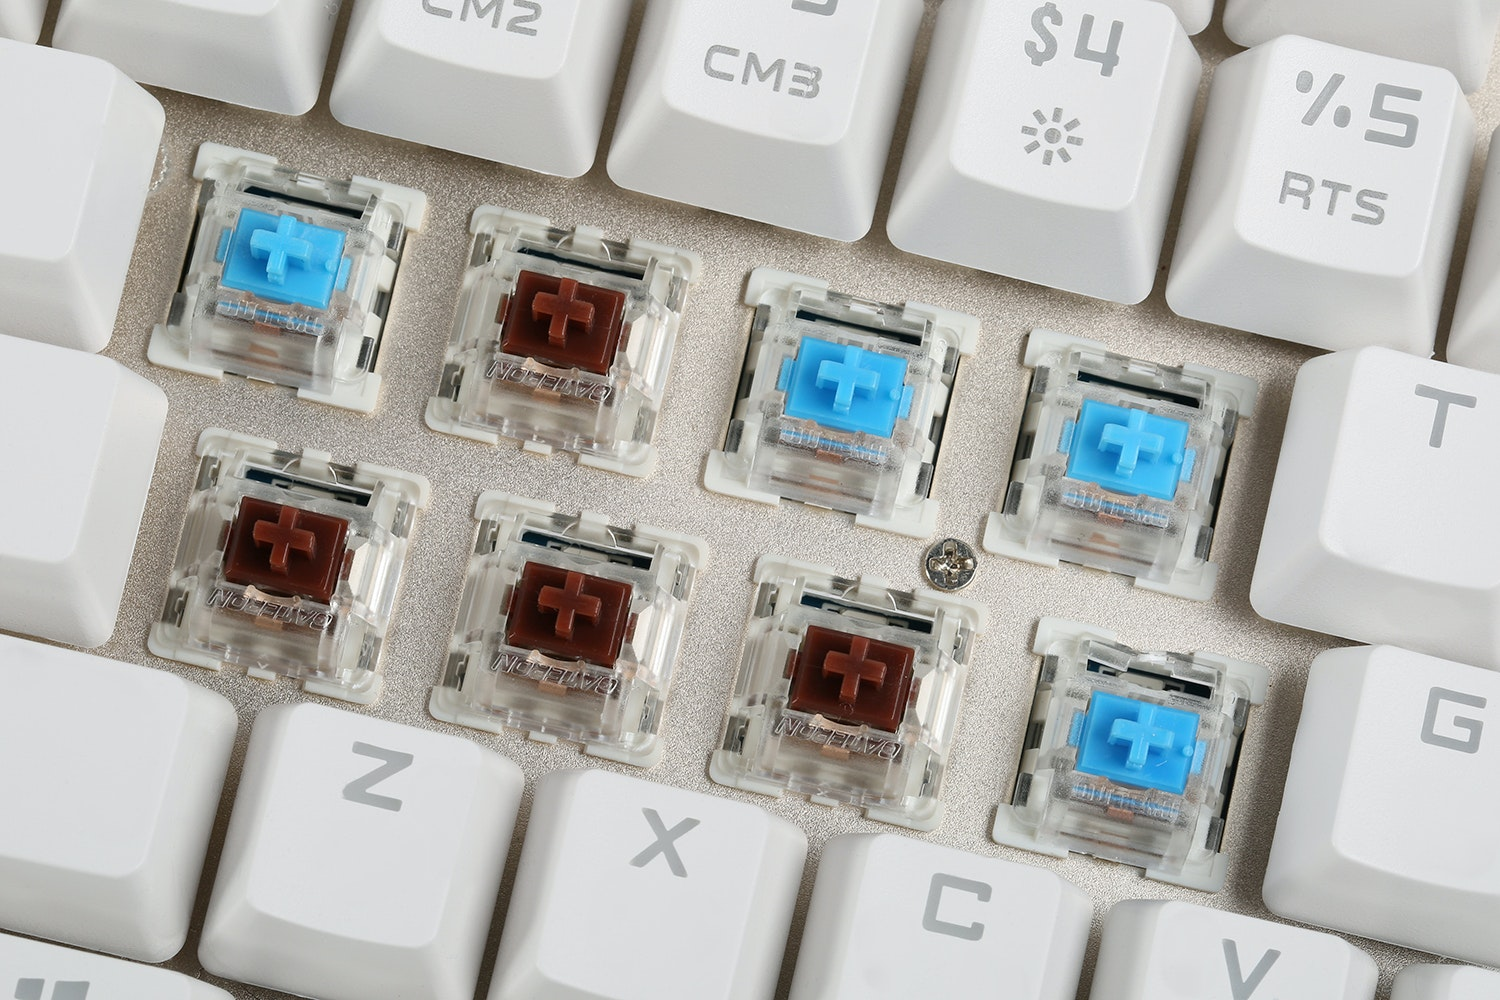 SMD LED Compatible Gateron Switches